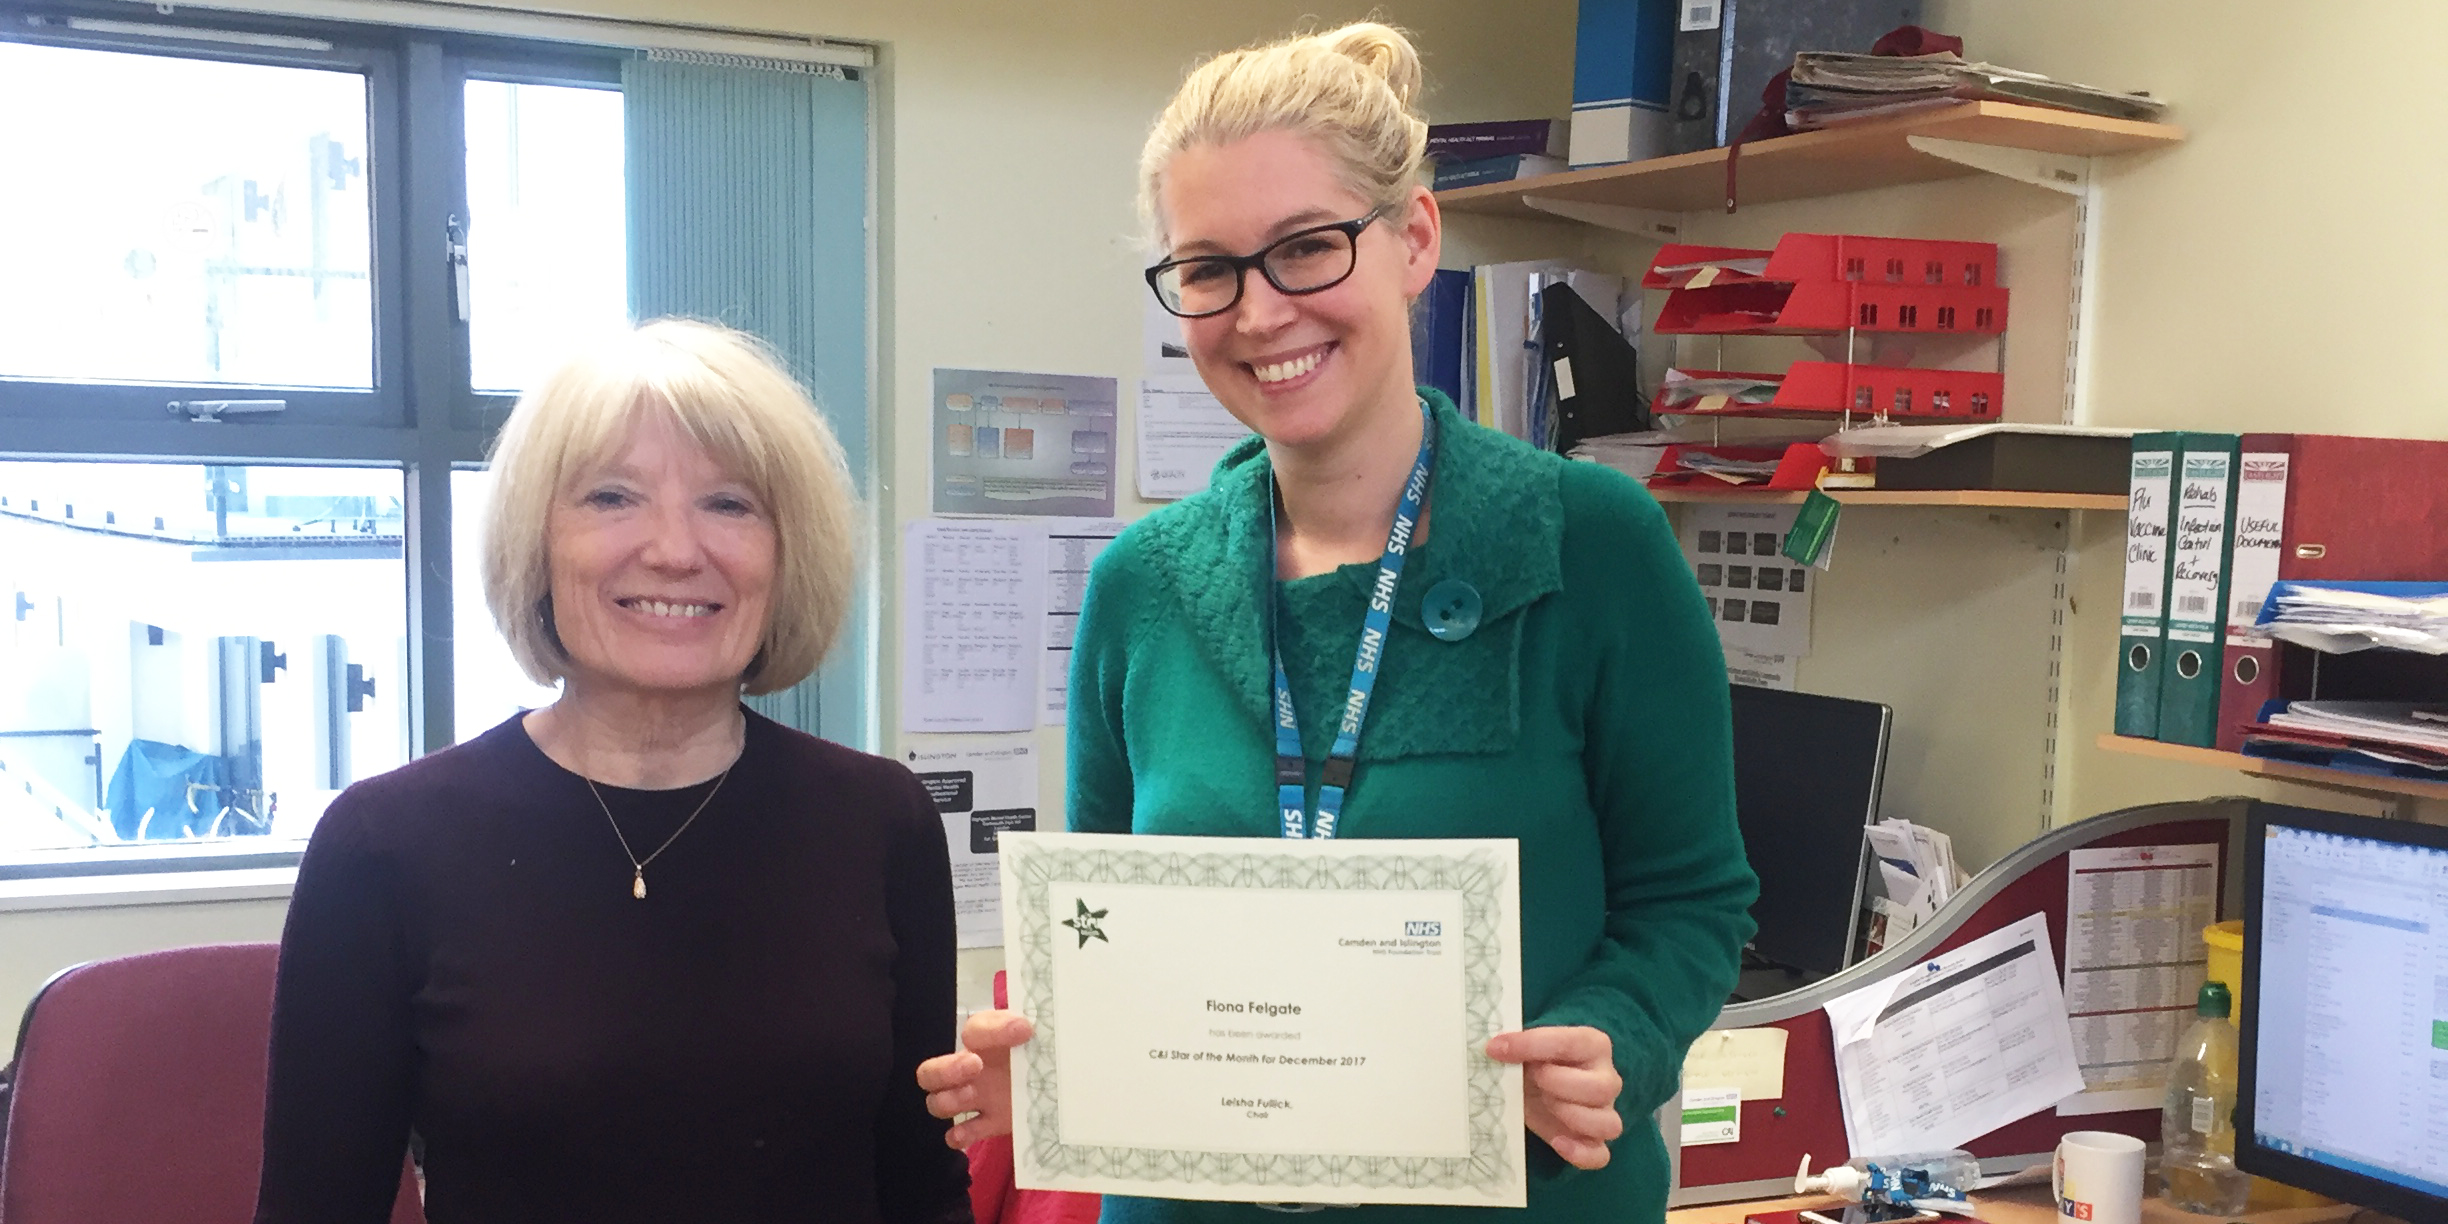 Fiona Felgate star of the month December